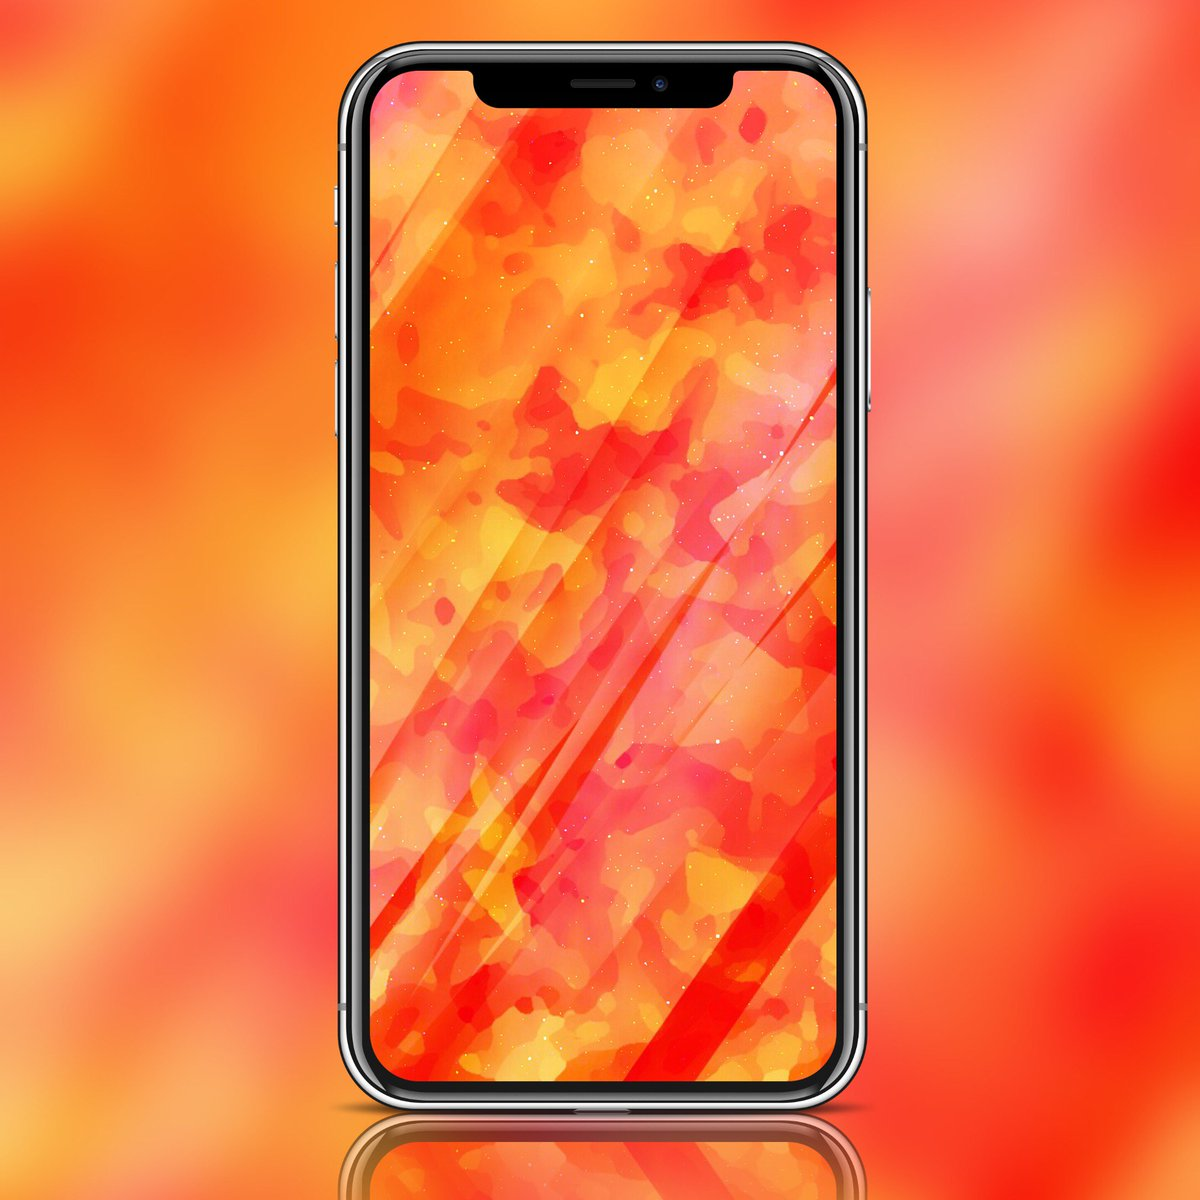 Geni Zem On Twitter Orange Military Prod By Evgeniyzemelko Rt Graphicdesign Wallpaper Iphonewallpaper Ios Android Iphone Samsung Iphonex Background Lockscreen Homescreen Abstract Iphone X Https T Co Stljdw2l8z All Iphone Https T Co